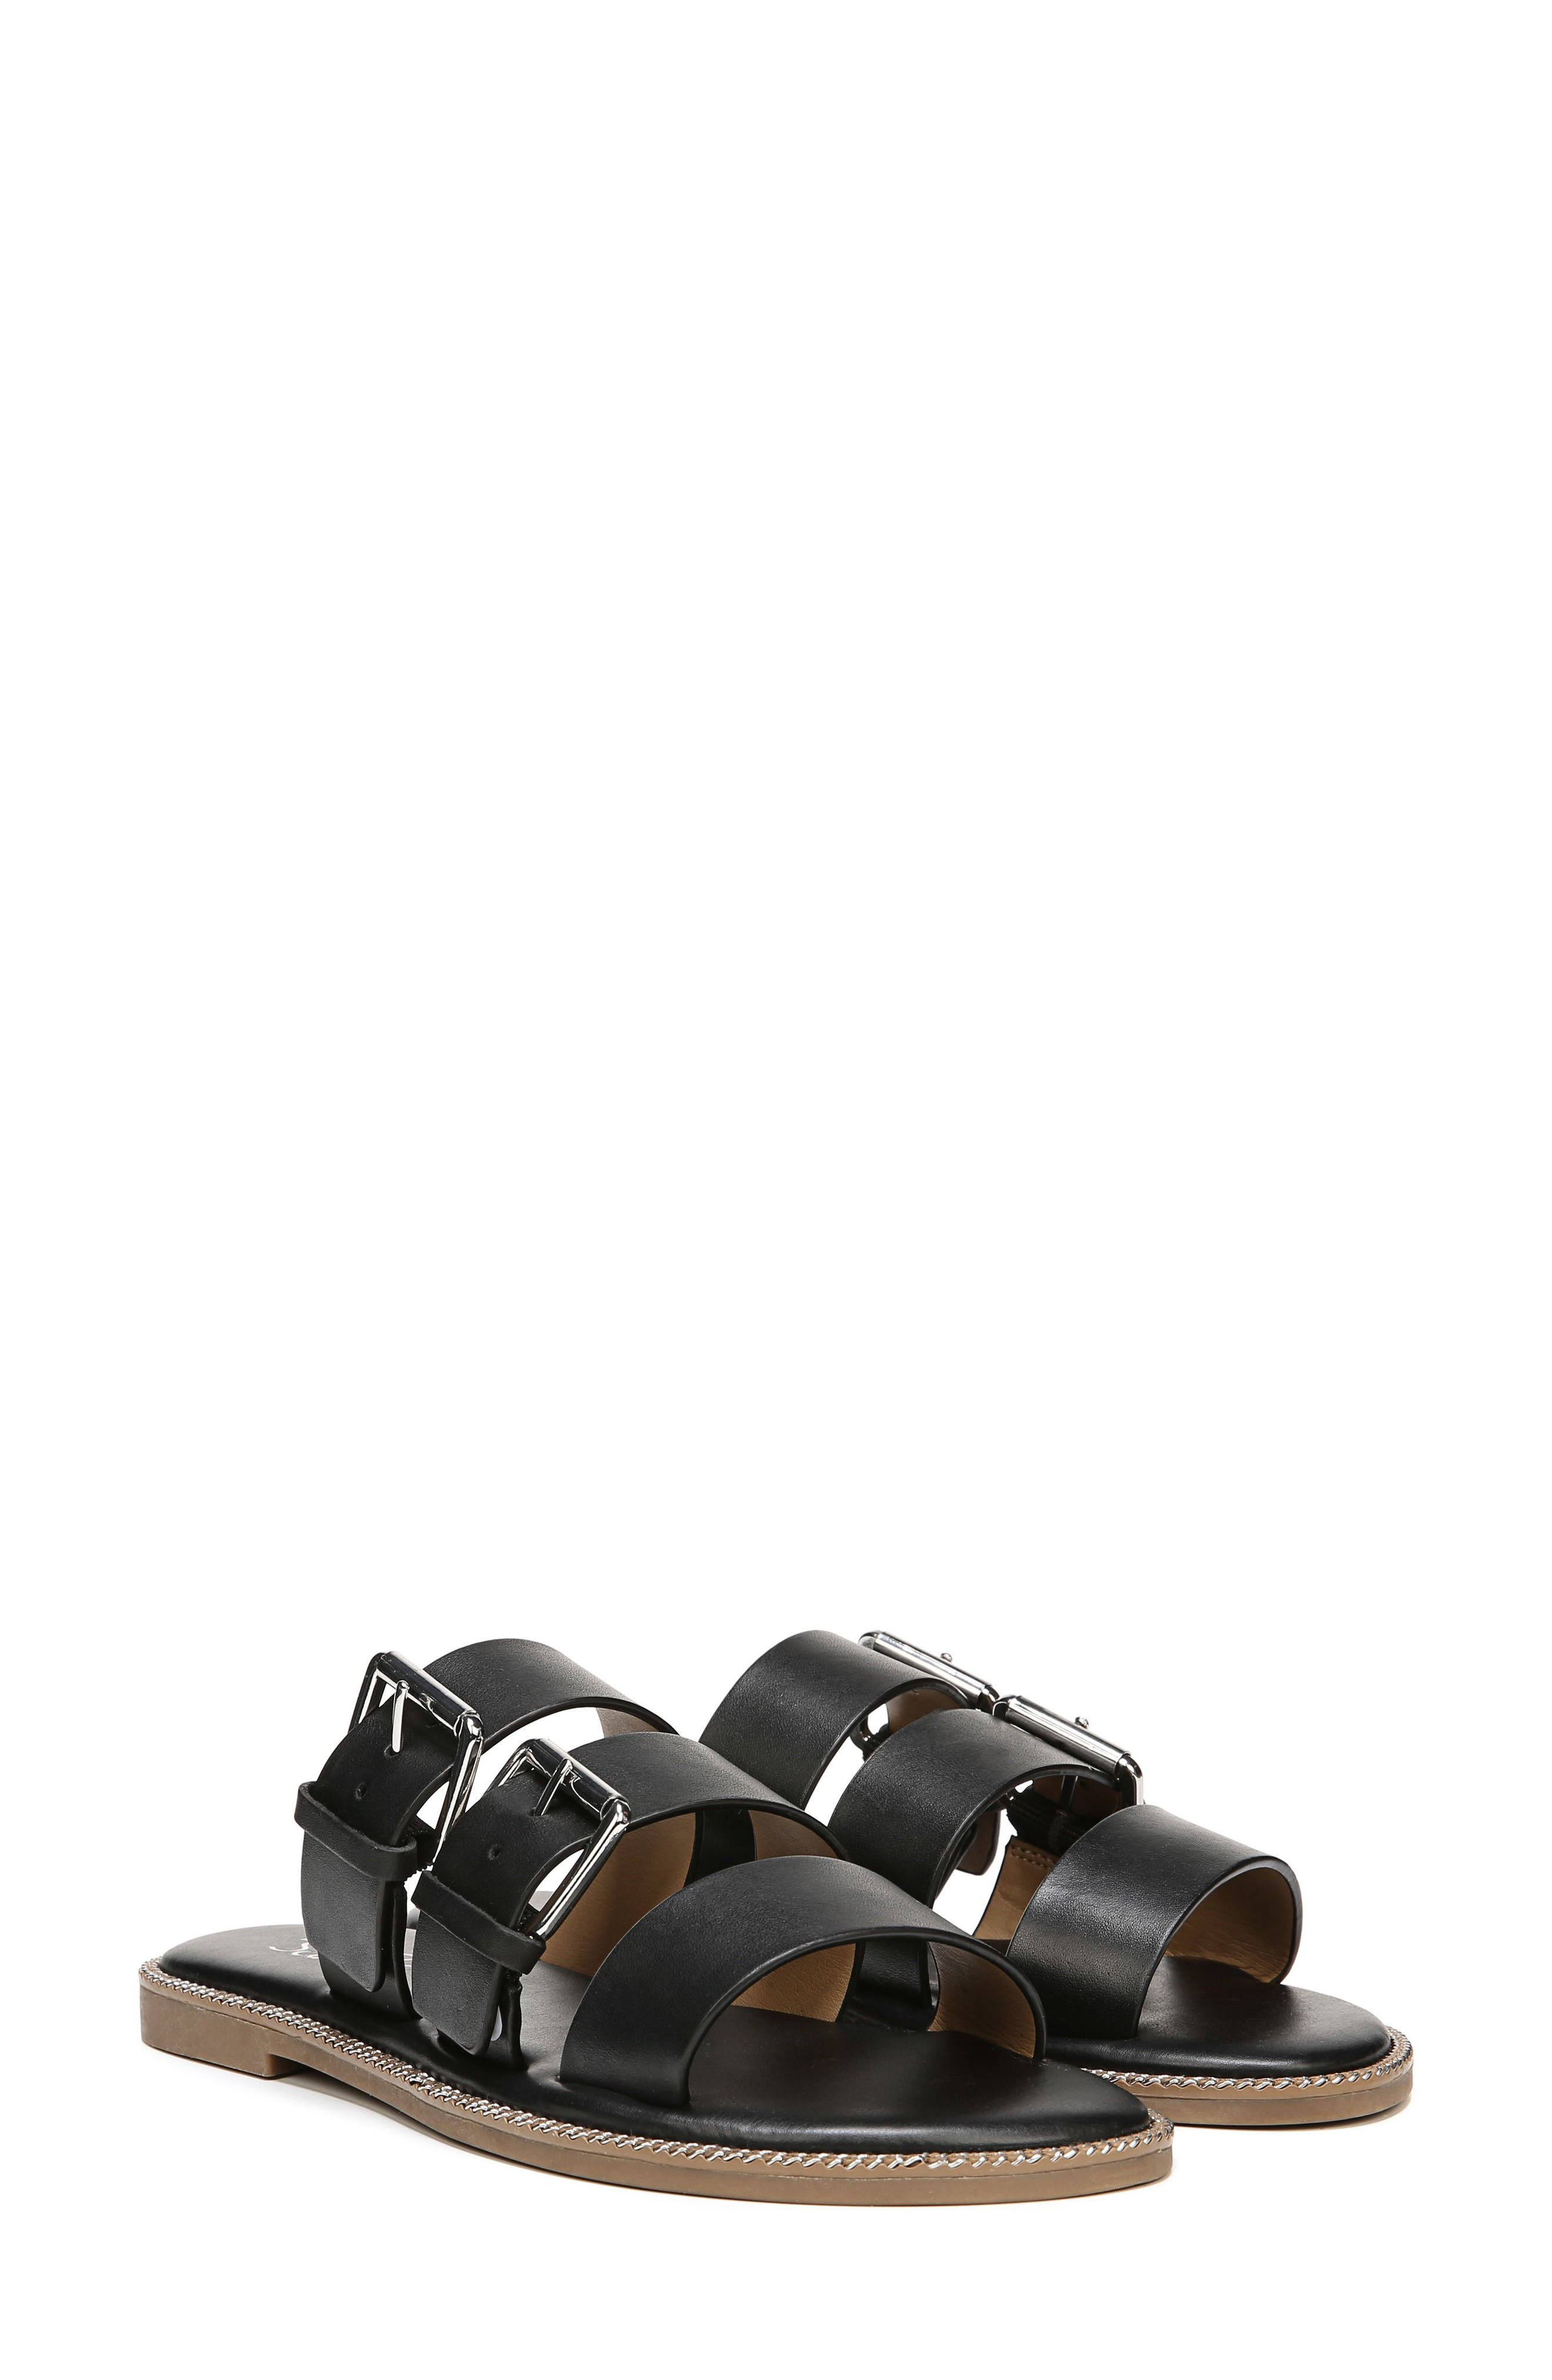 SARTO by Franco Sarto Kasa Three Strap Slide Sandal,                         Main,                         color, BLACK LEATHER